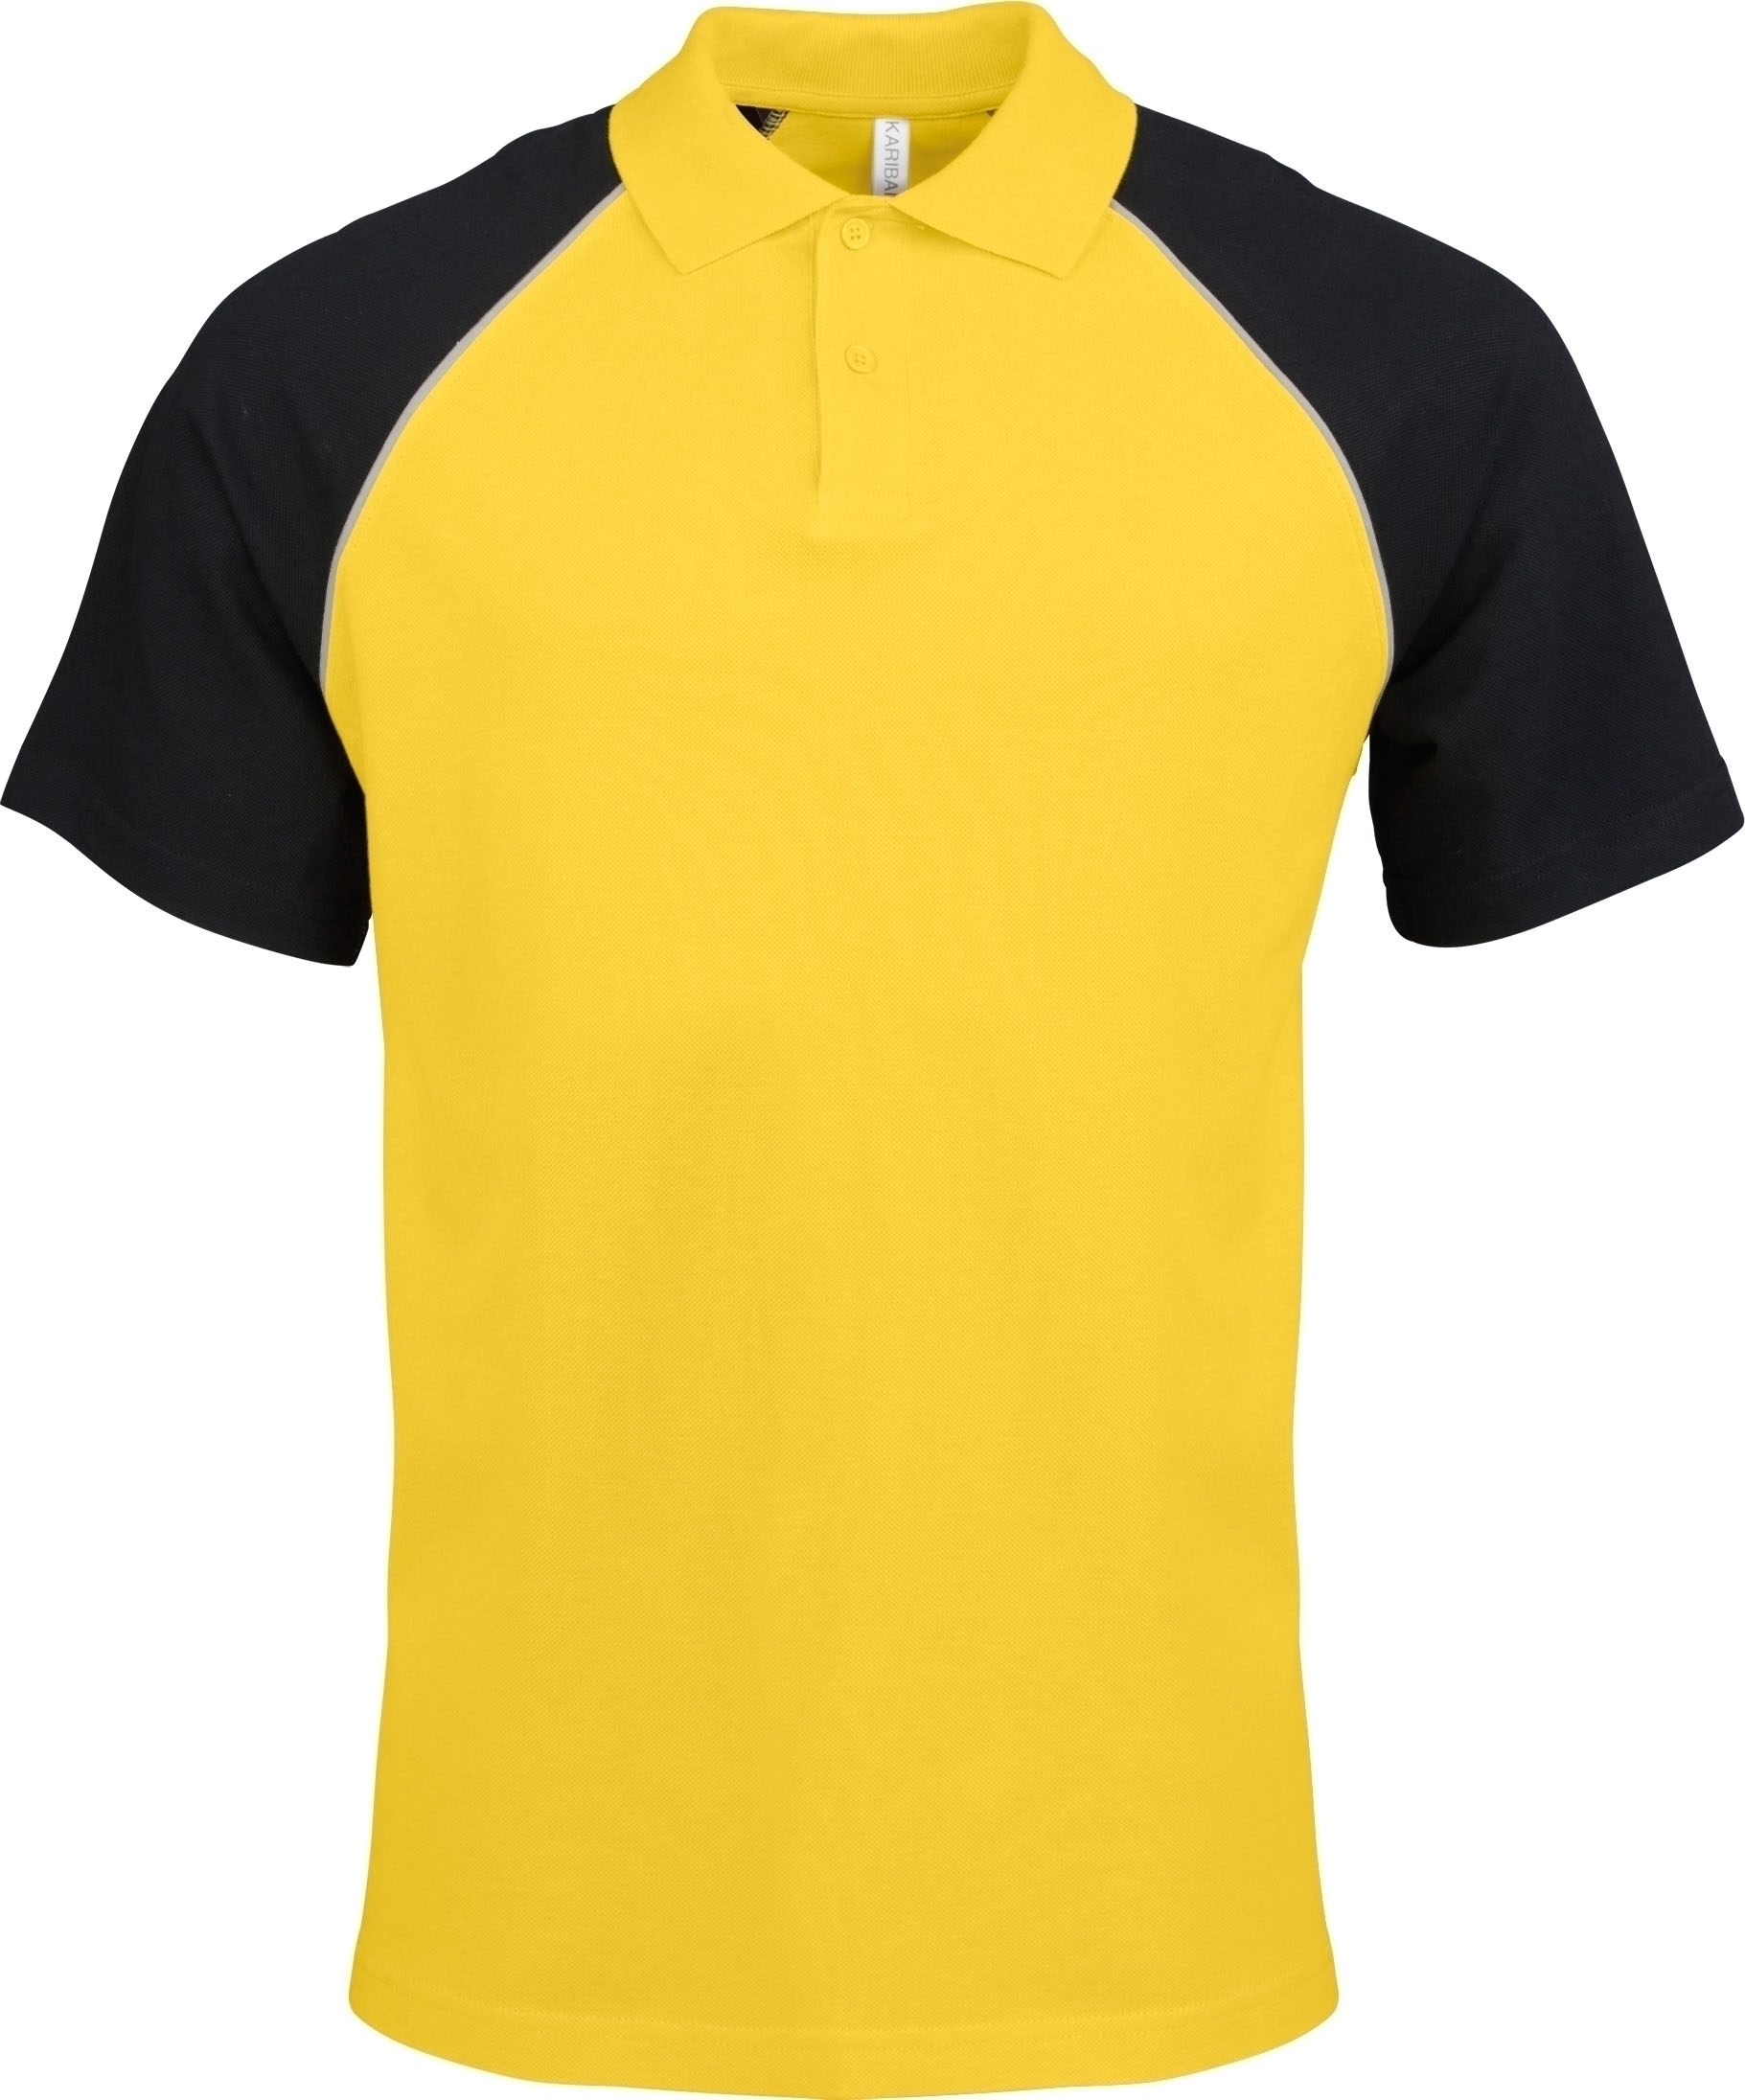 POLO BASE BALL MANCHES COURTES Yellow / Black Jaune